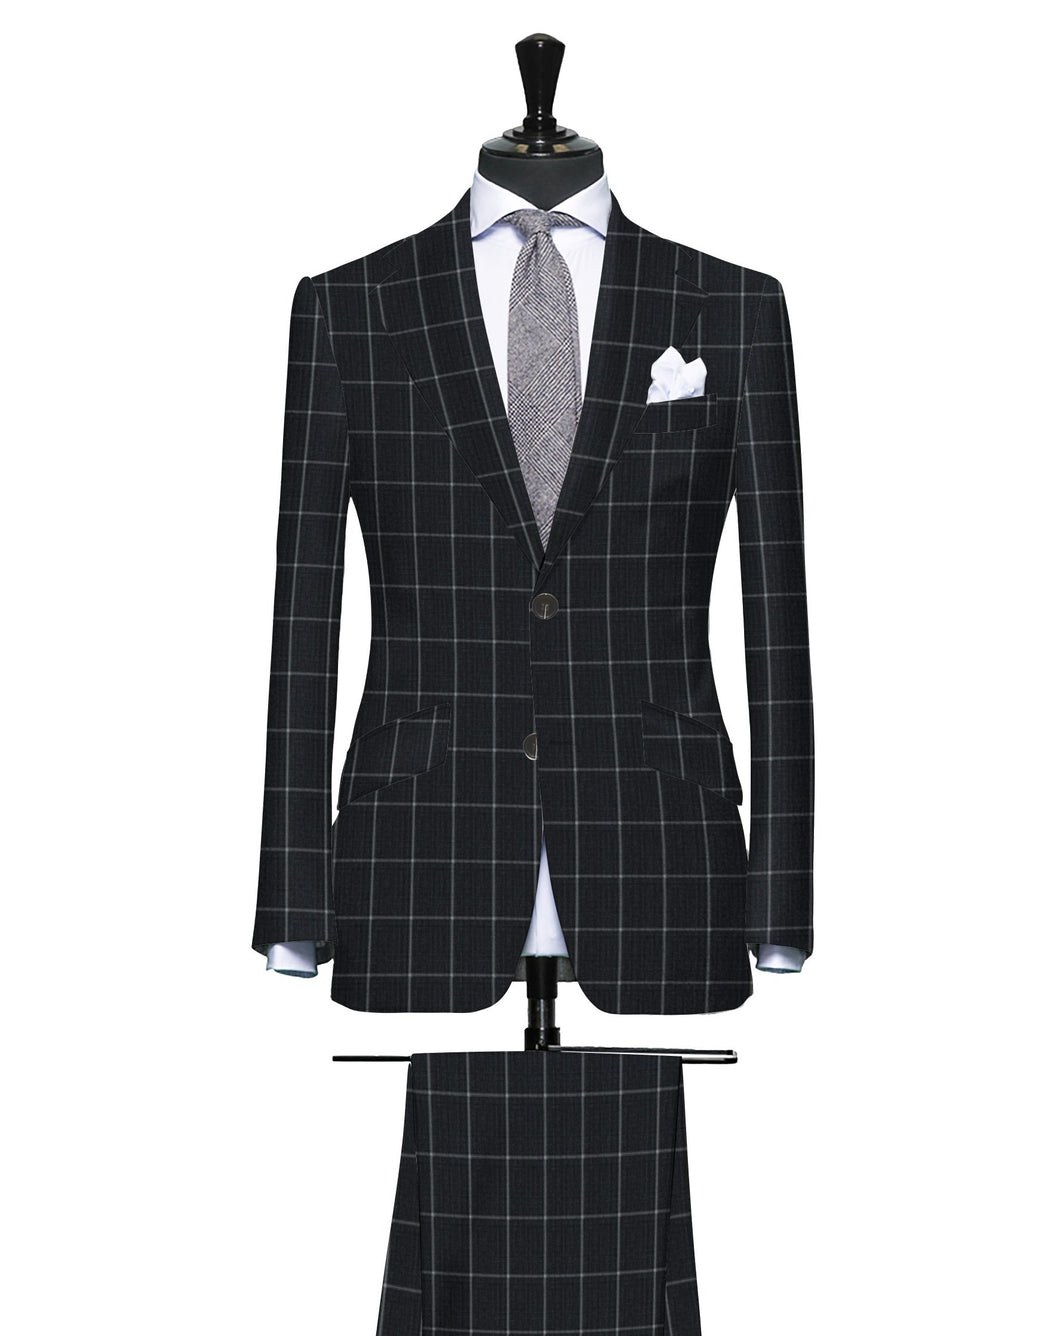 Power Grey with Contrast Windowpane, Super 150, Wool